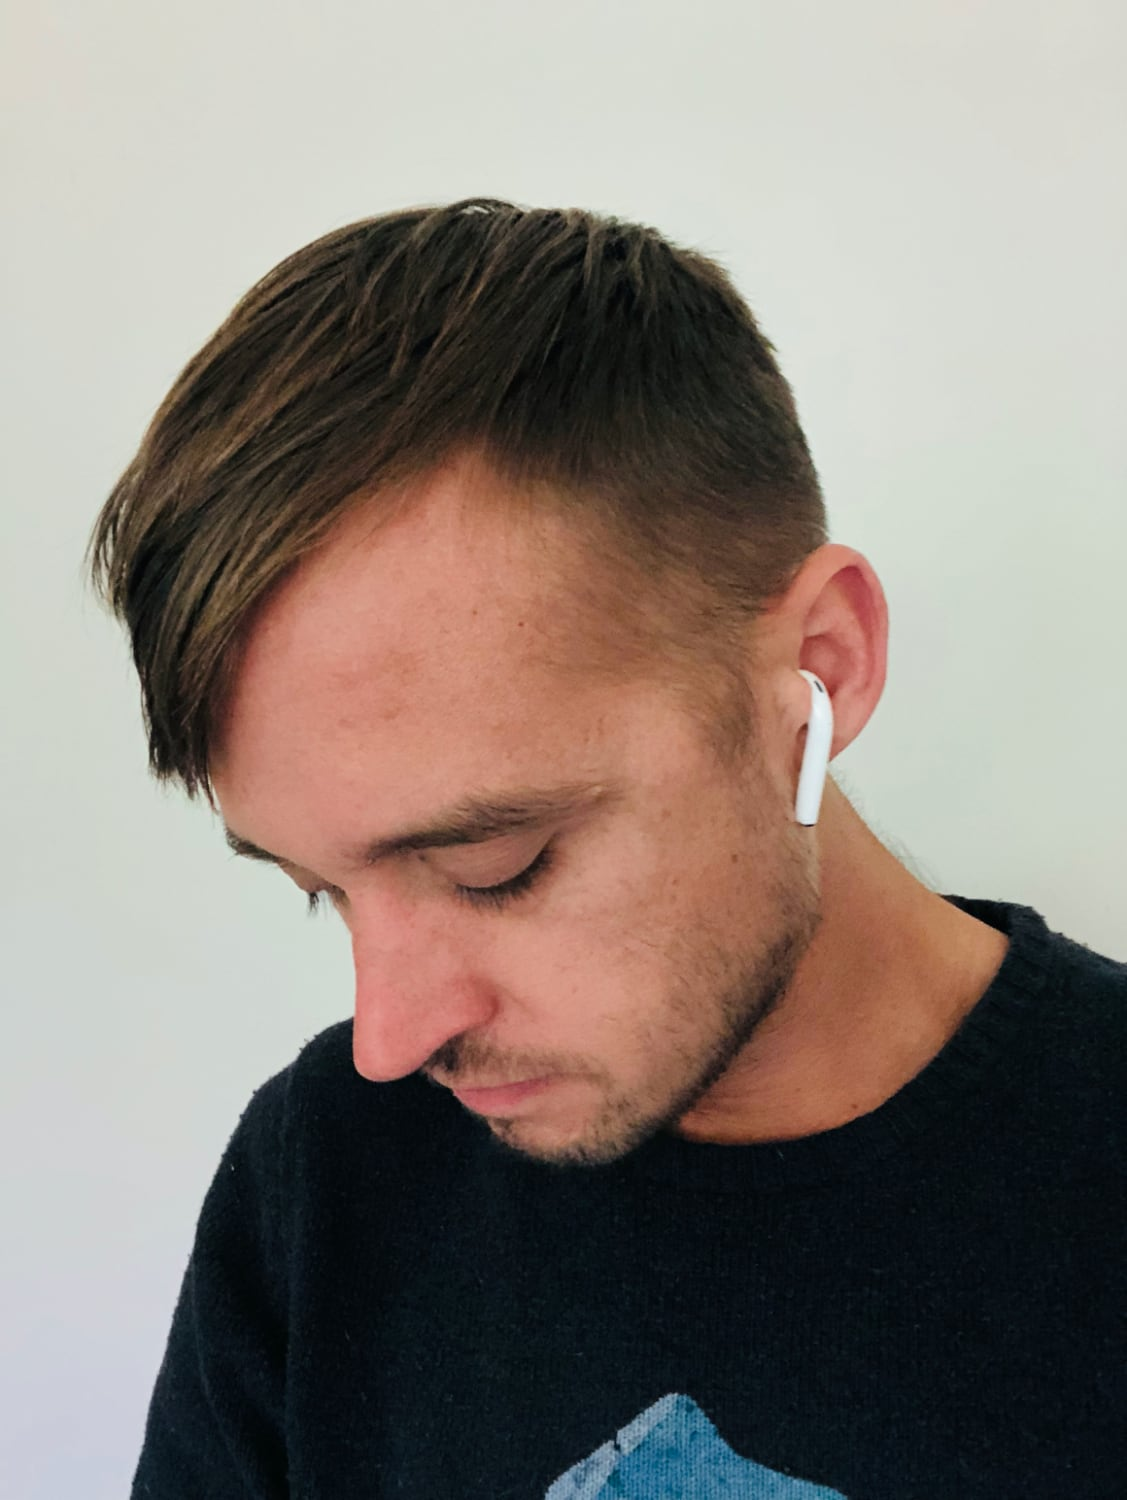 wearing second-generation wireless AirPods